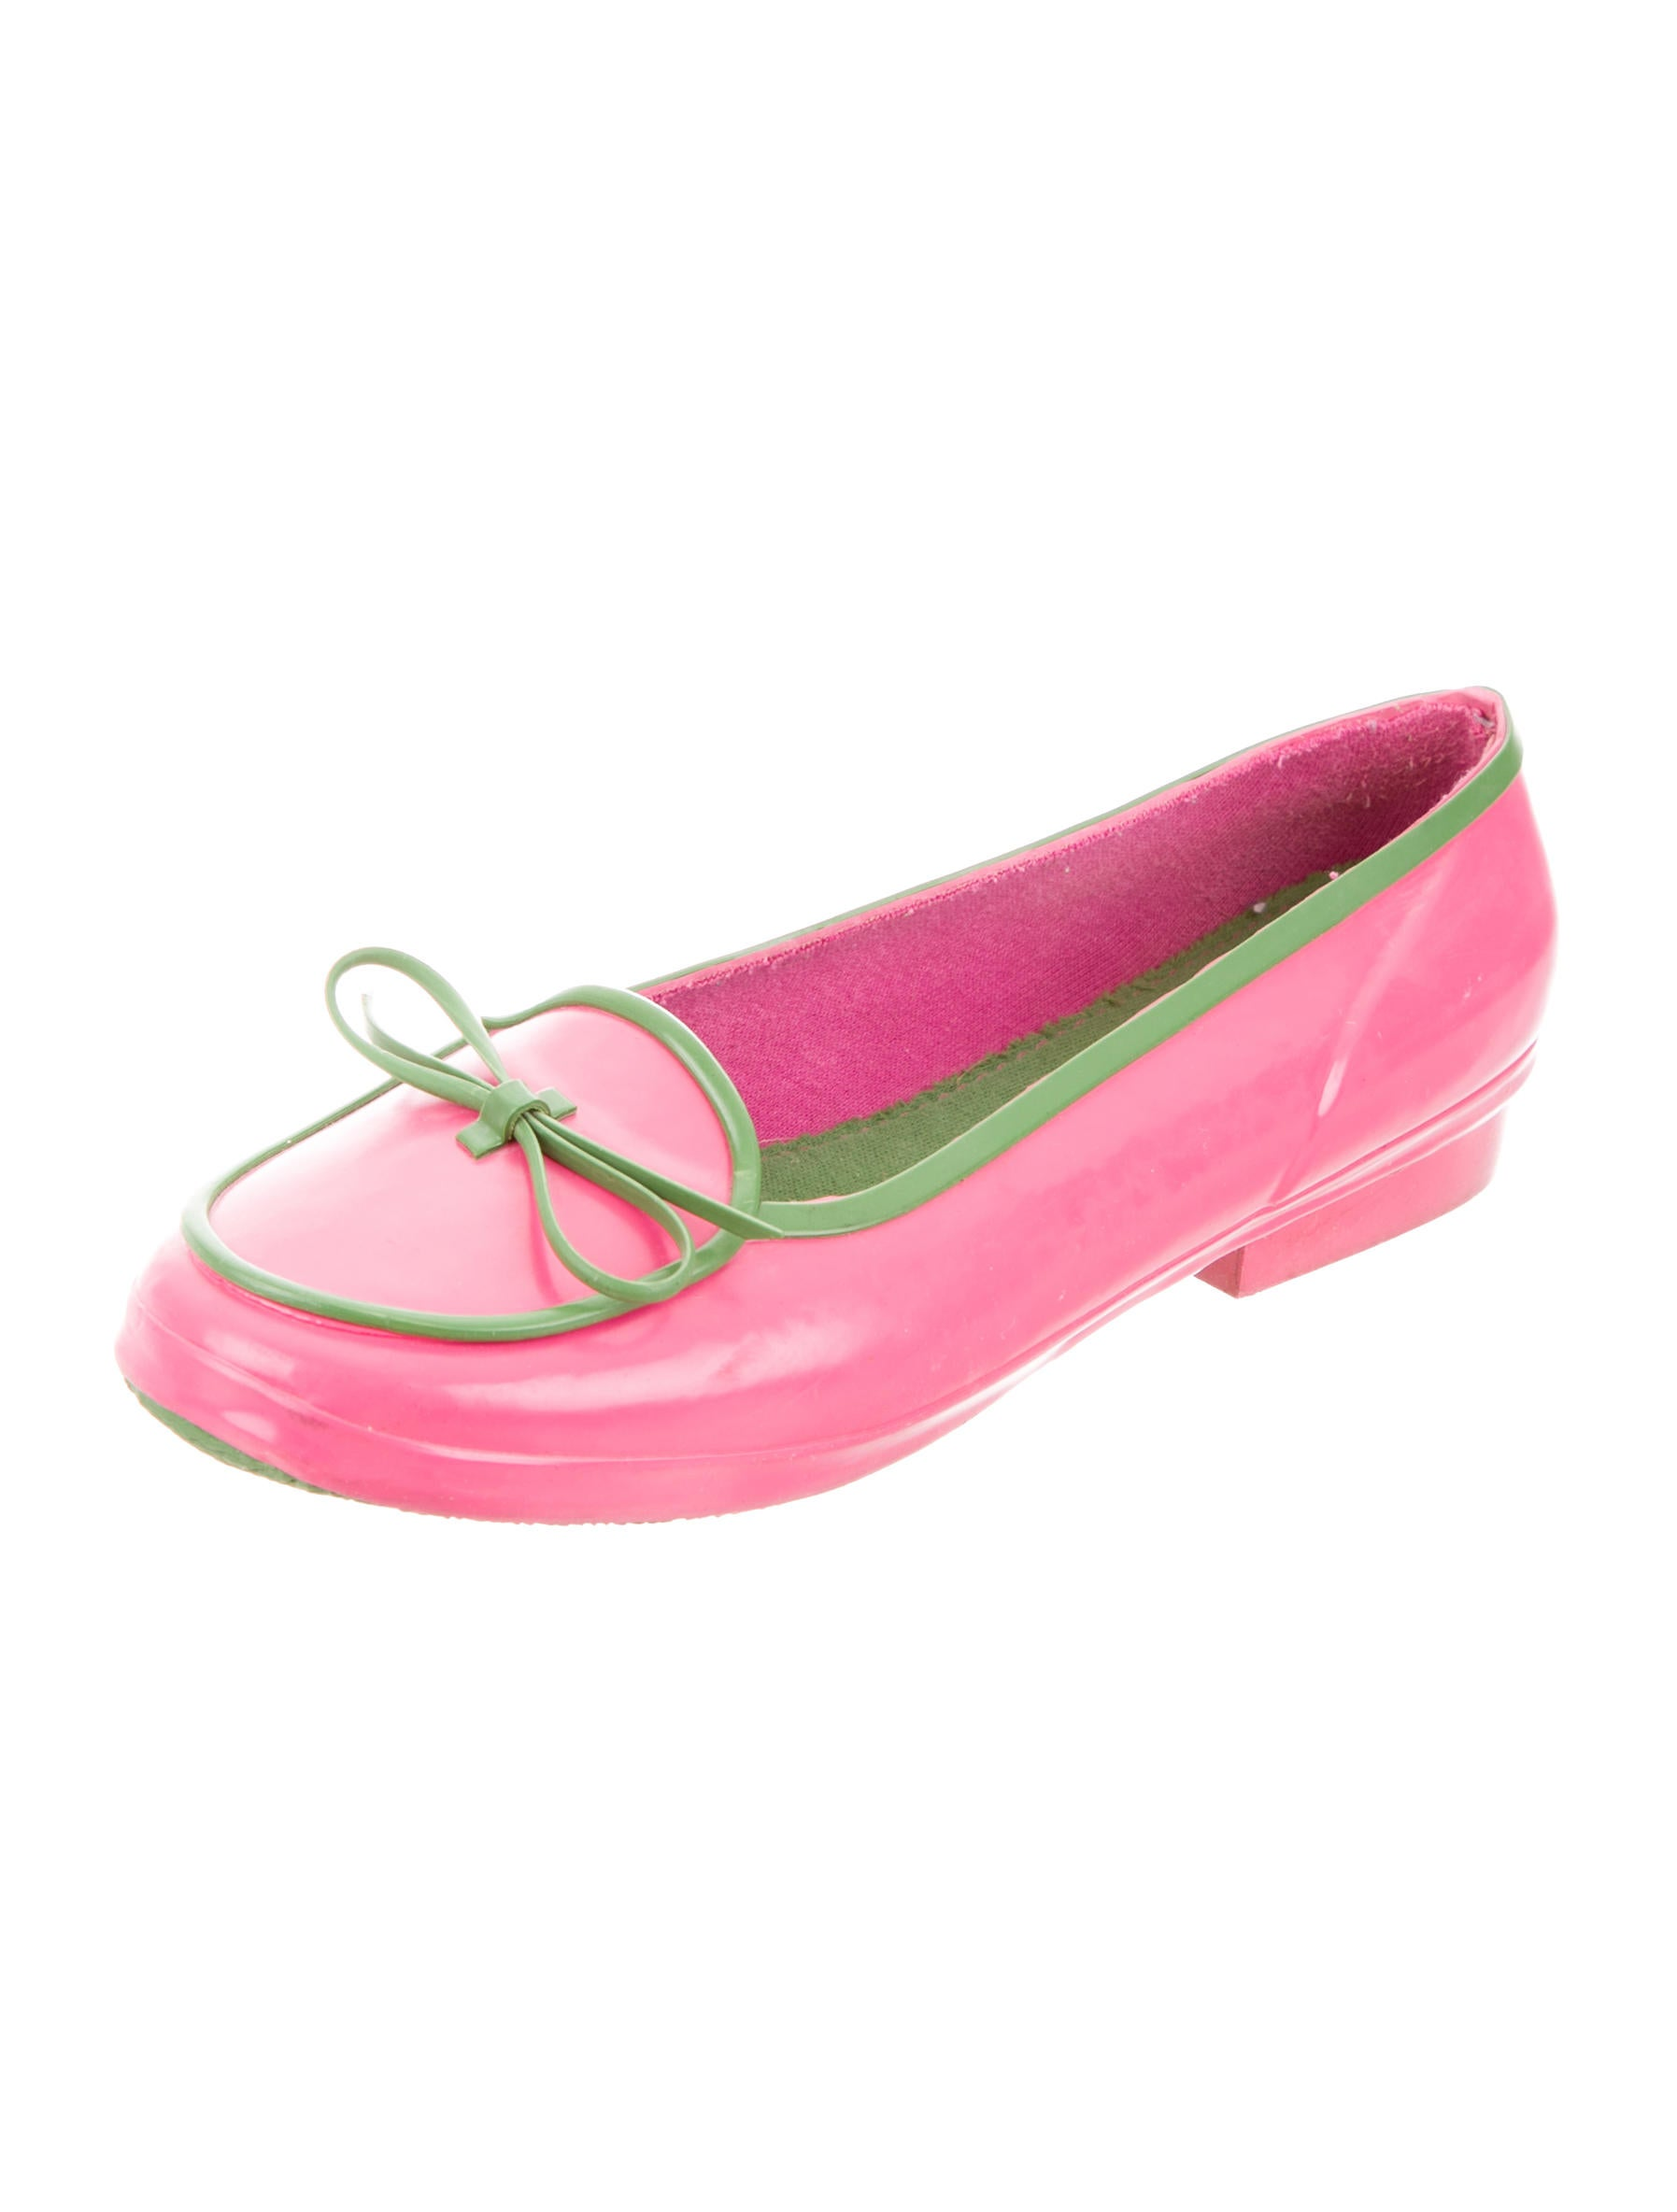 Kate spade new york rubber round toe flats shoes for Kate spade new york flats